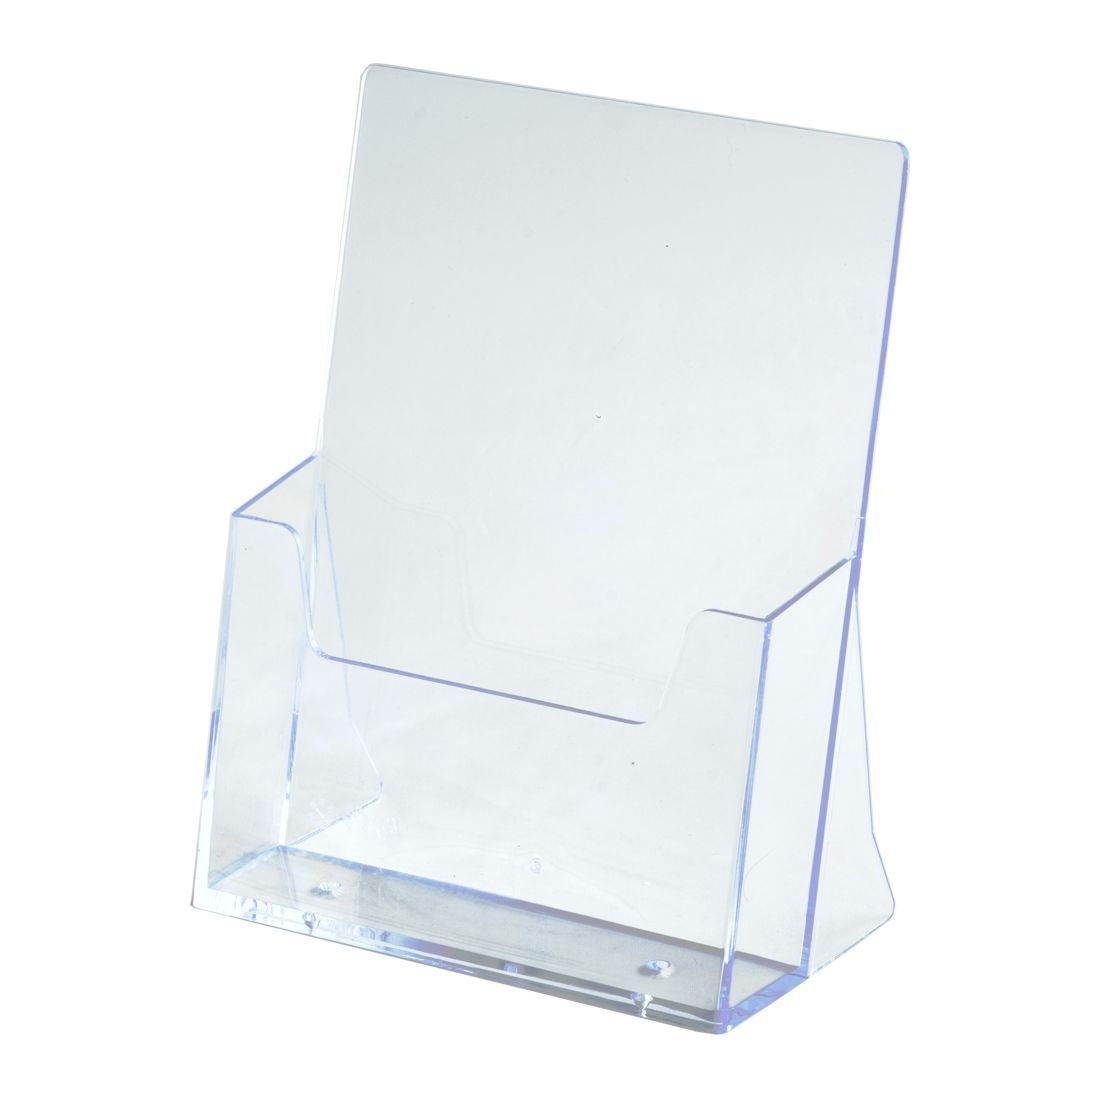 Fashion Acrylic Clear Desktop Business Card Holder Stand Display Dispenser Office Tools Card Holder & Note Holder